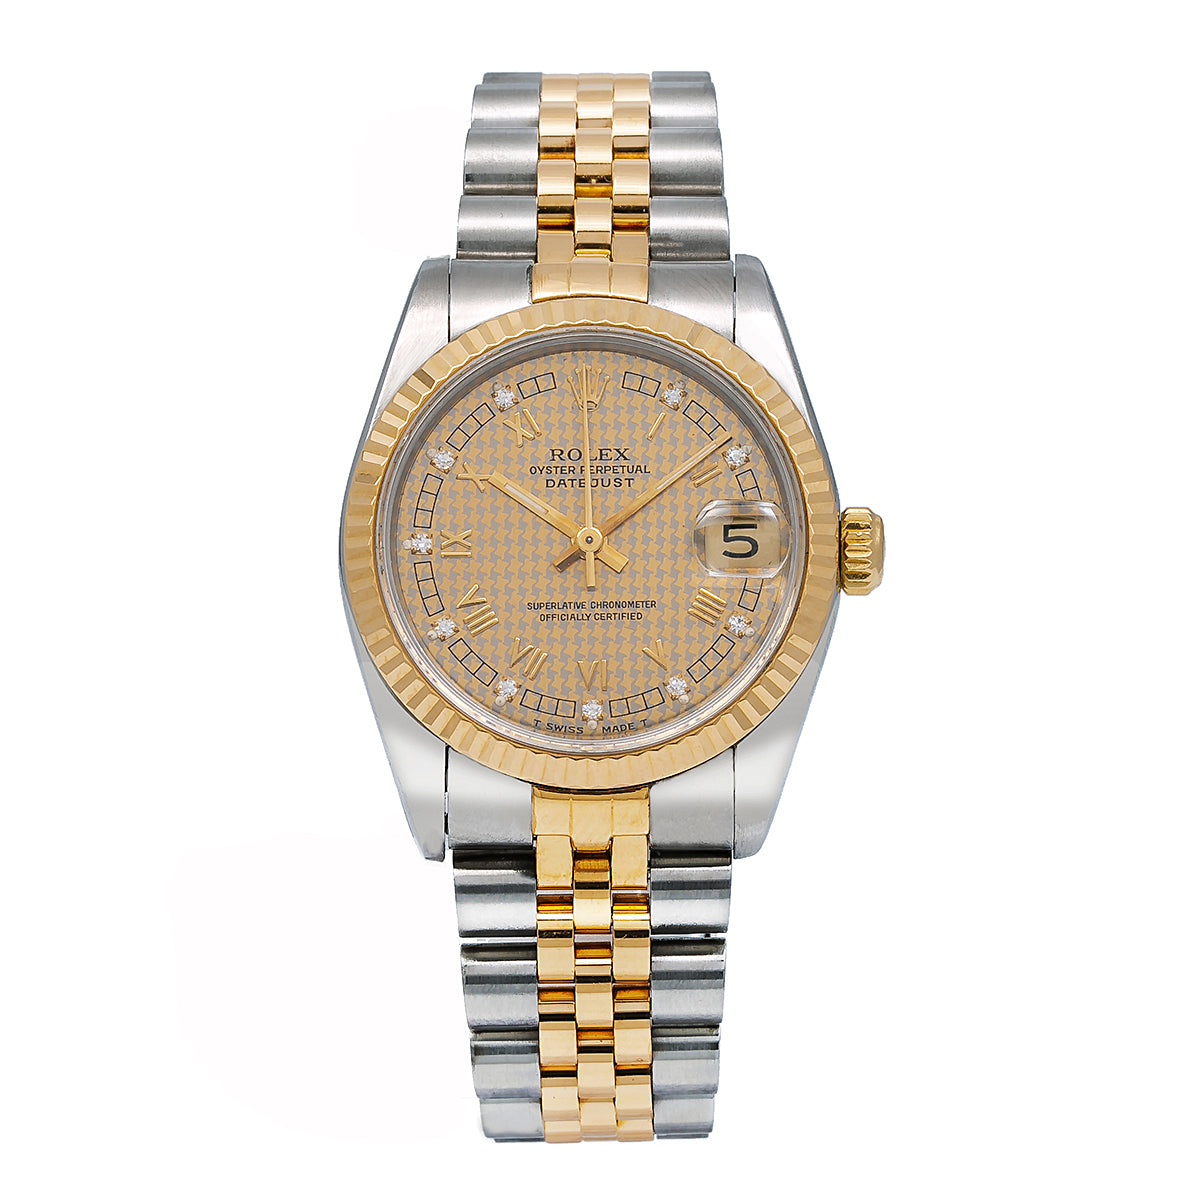 Rolex Lady-Datejust 68273 31MM Champagne Dial With Two Tone Bracelet